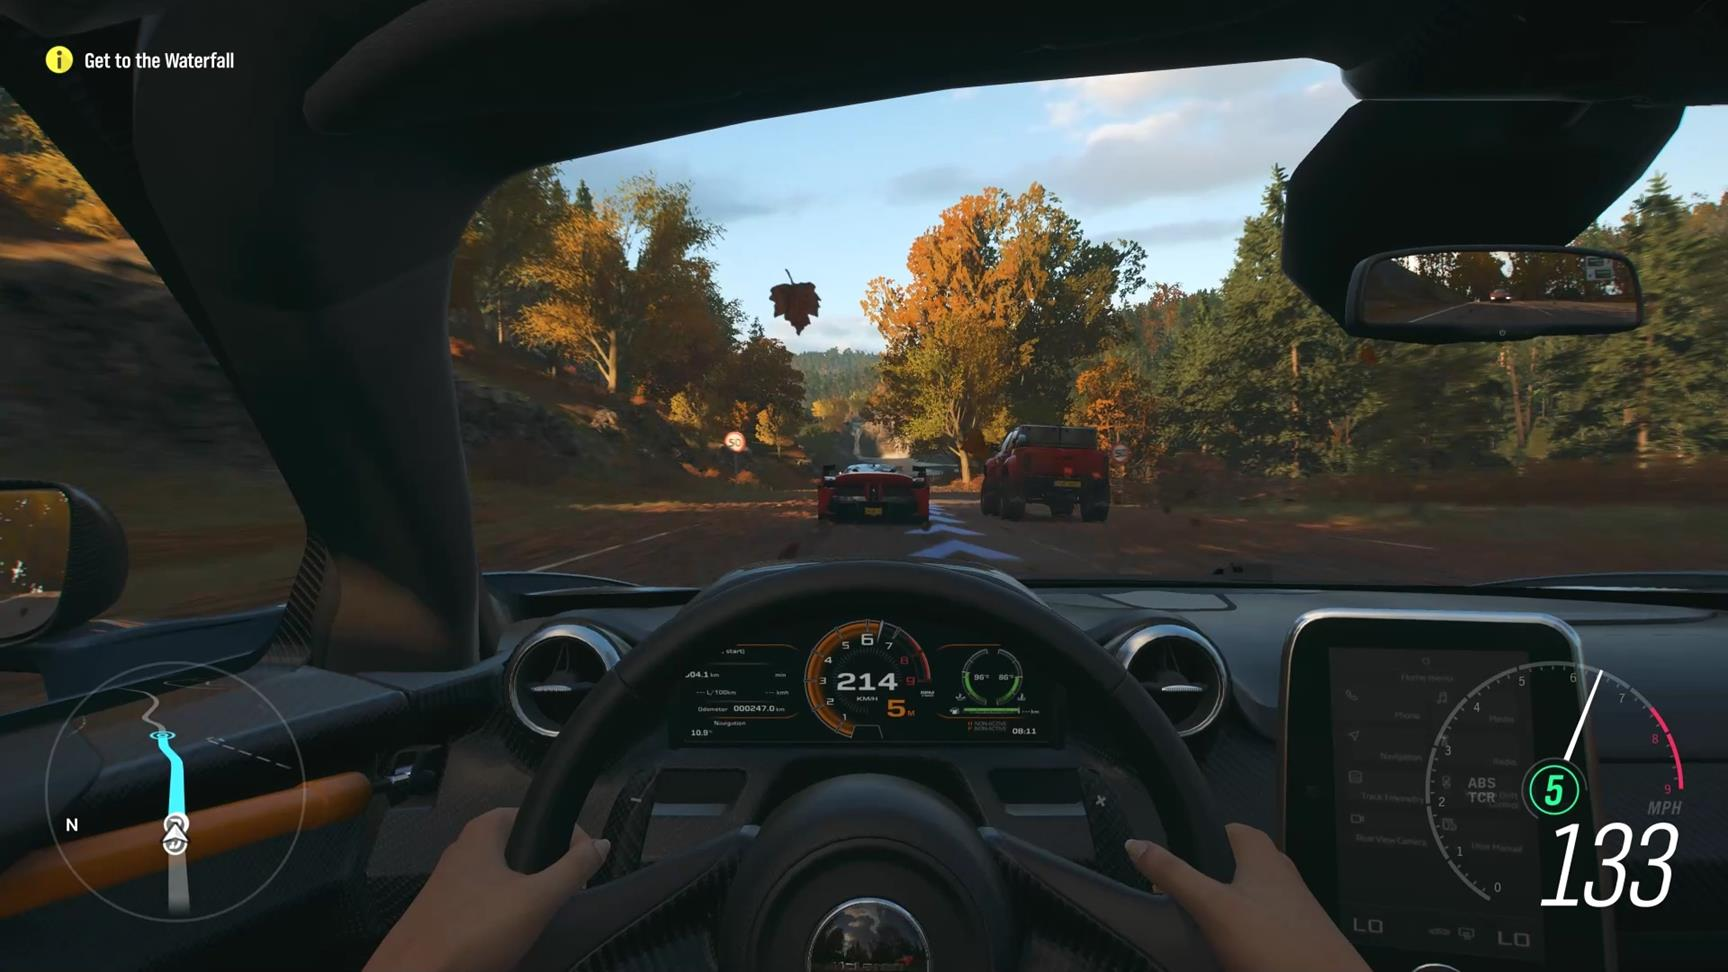 How to use HDR on PC with games like Forza Horizon 4 - VG247